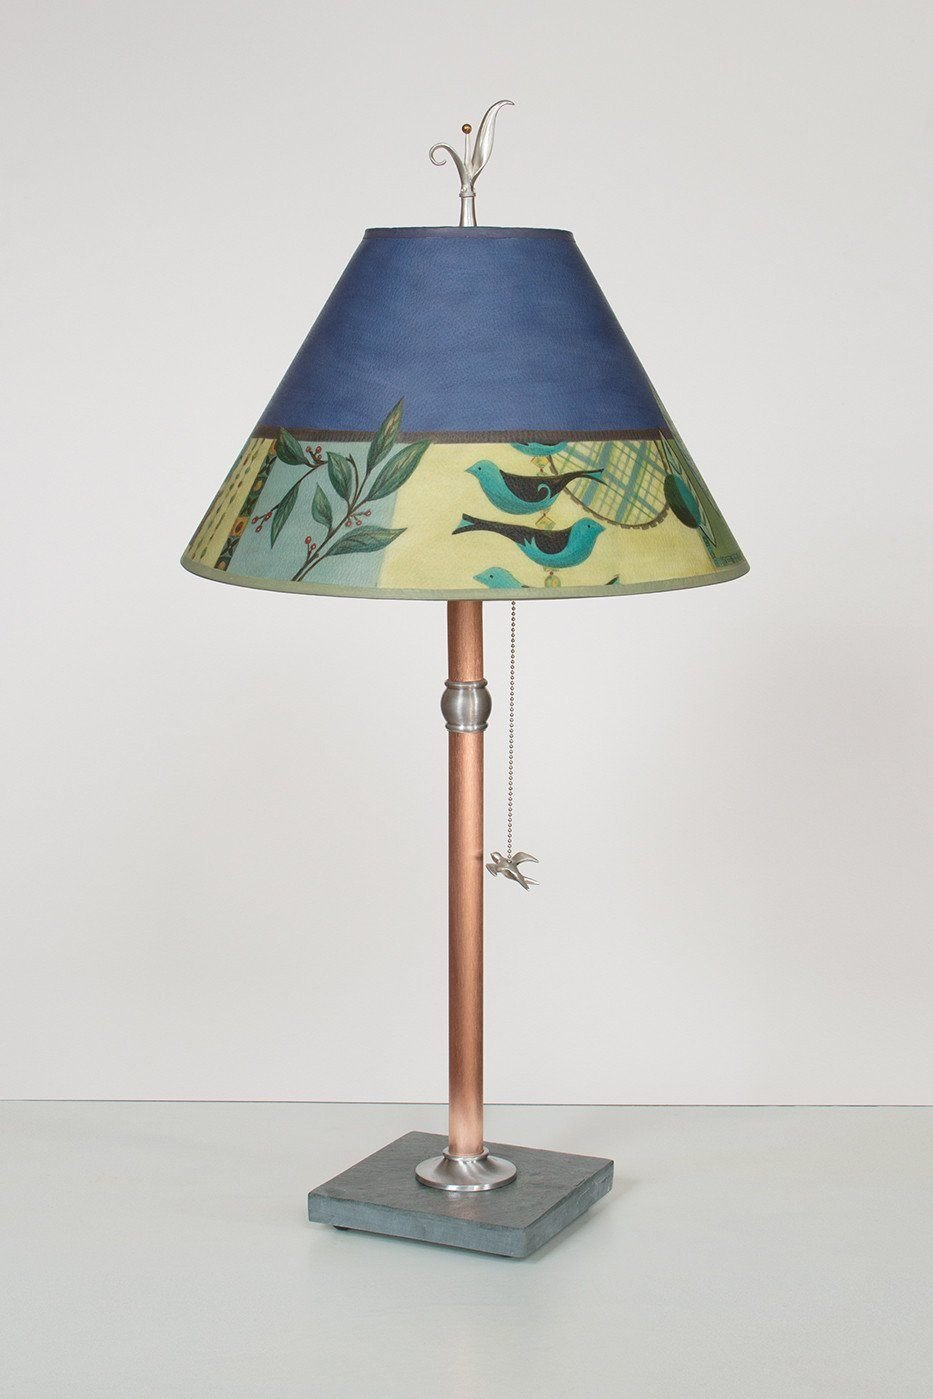 Copper Table Lamp with Medium Conical Shade in New Capri Periwinkle - Lit